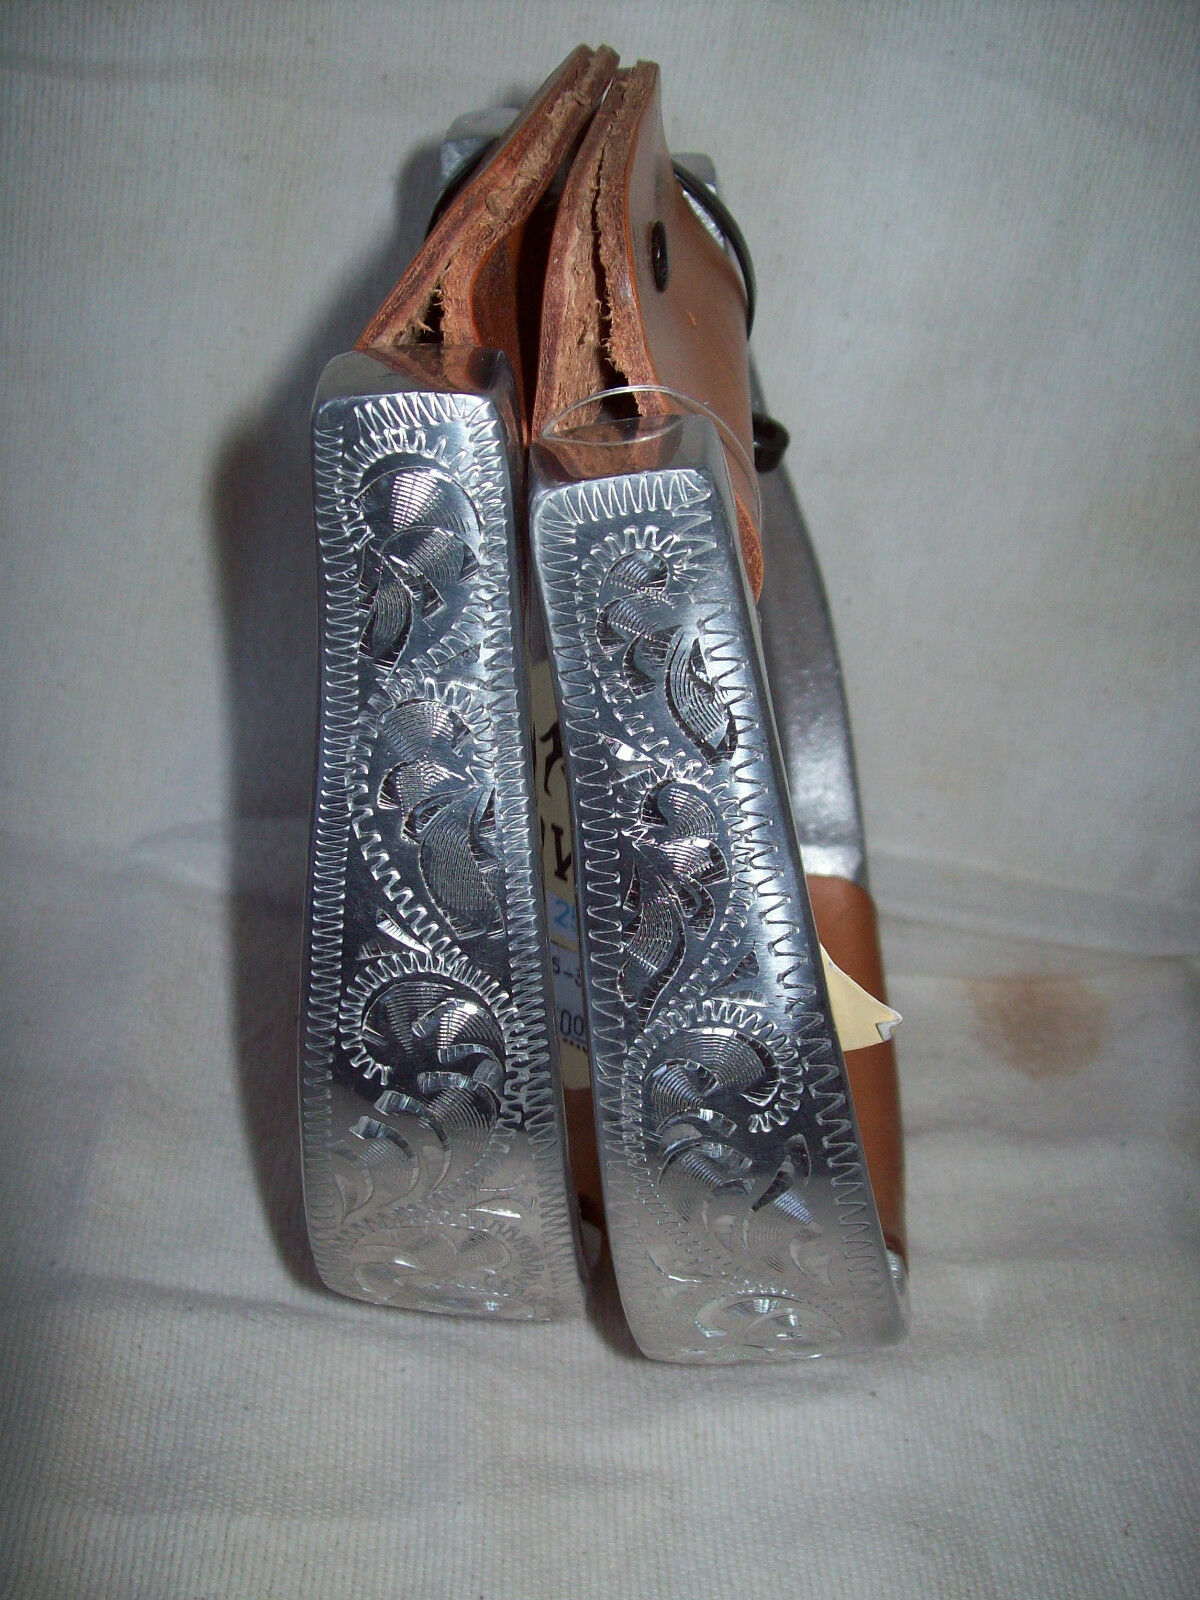 Show Stirrups Engraved Aluminum Ox bow  leather tread